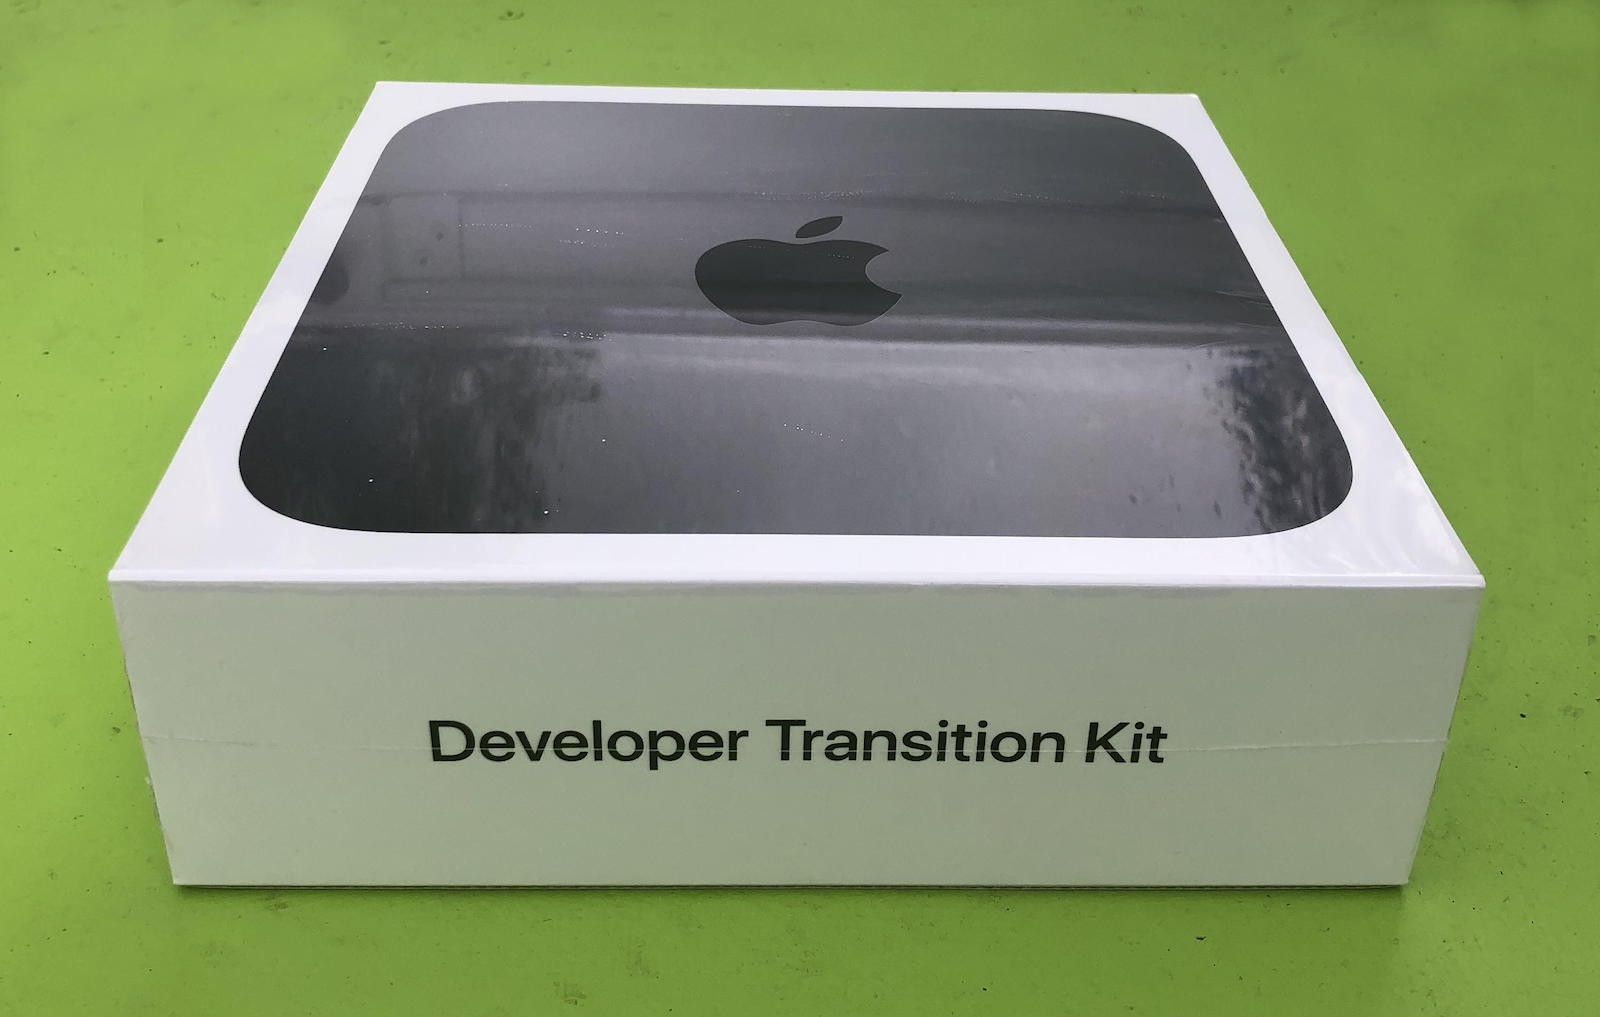 Mac mini with Apple Silicon